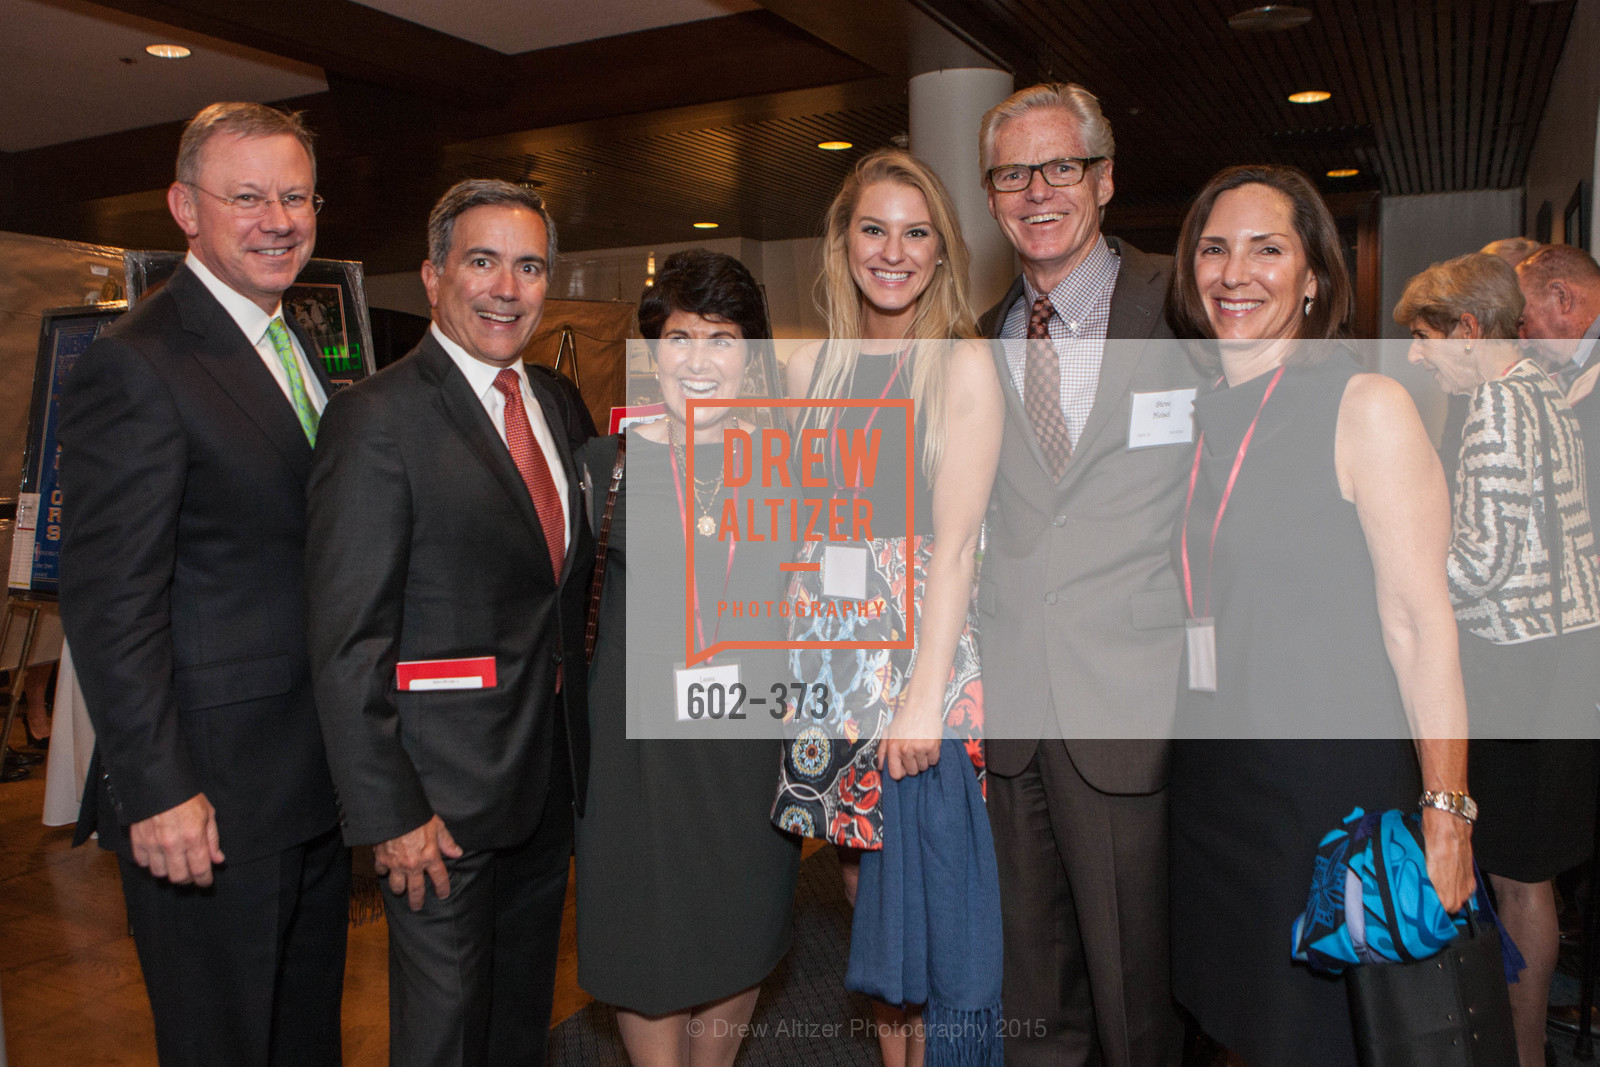 Jim Lico, Albert Wetter, Laura Hosking, Katie Hosking, Steve Meisel, Janice Meisel, Sovereign Order of Malta Presents: A Knight for Champions, 7th Annual Silver Chalice Awards Dinner, St. Francis Yacht Club. 99 Yacht Rd, October 13th, 2015,Drew Altizer, Drew Altizer Photography, full-service agency, private events, San Francisco photographer, photographer california